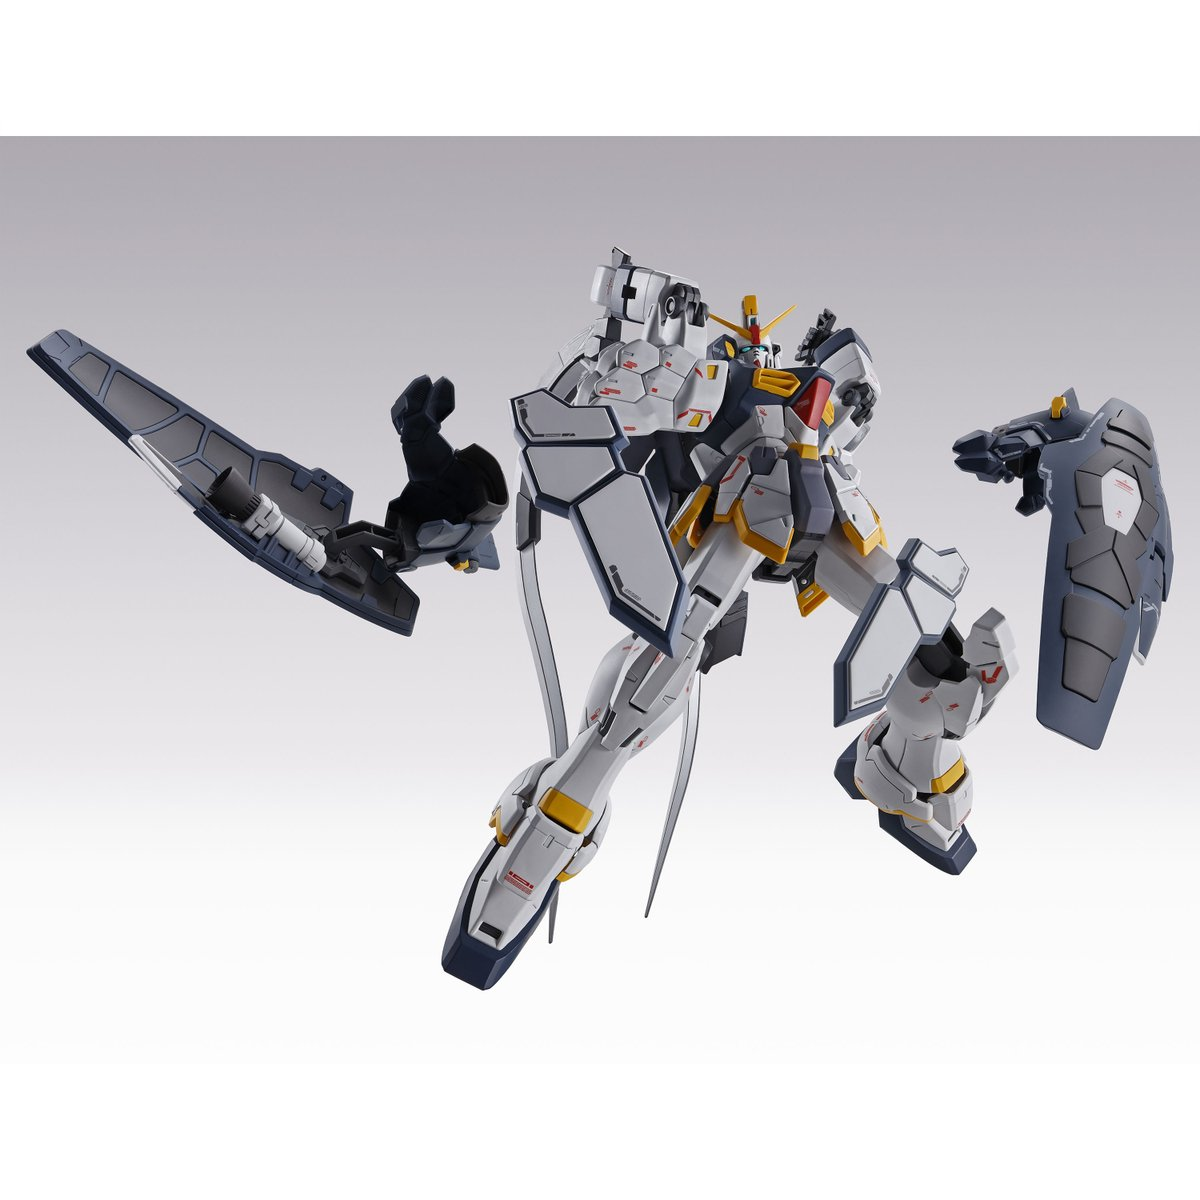 Bluefin Brands On Twitter The Mg 1 100 Gundam Sandrock Ew Armadillo Unit Will Be Available For Pre Order 7 20 At 6pm Pst For 68 00 On Premium Bandai Usa Item Ships Dec 2020 Https T Co Pqh4hih85a